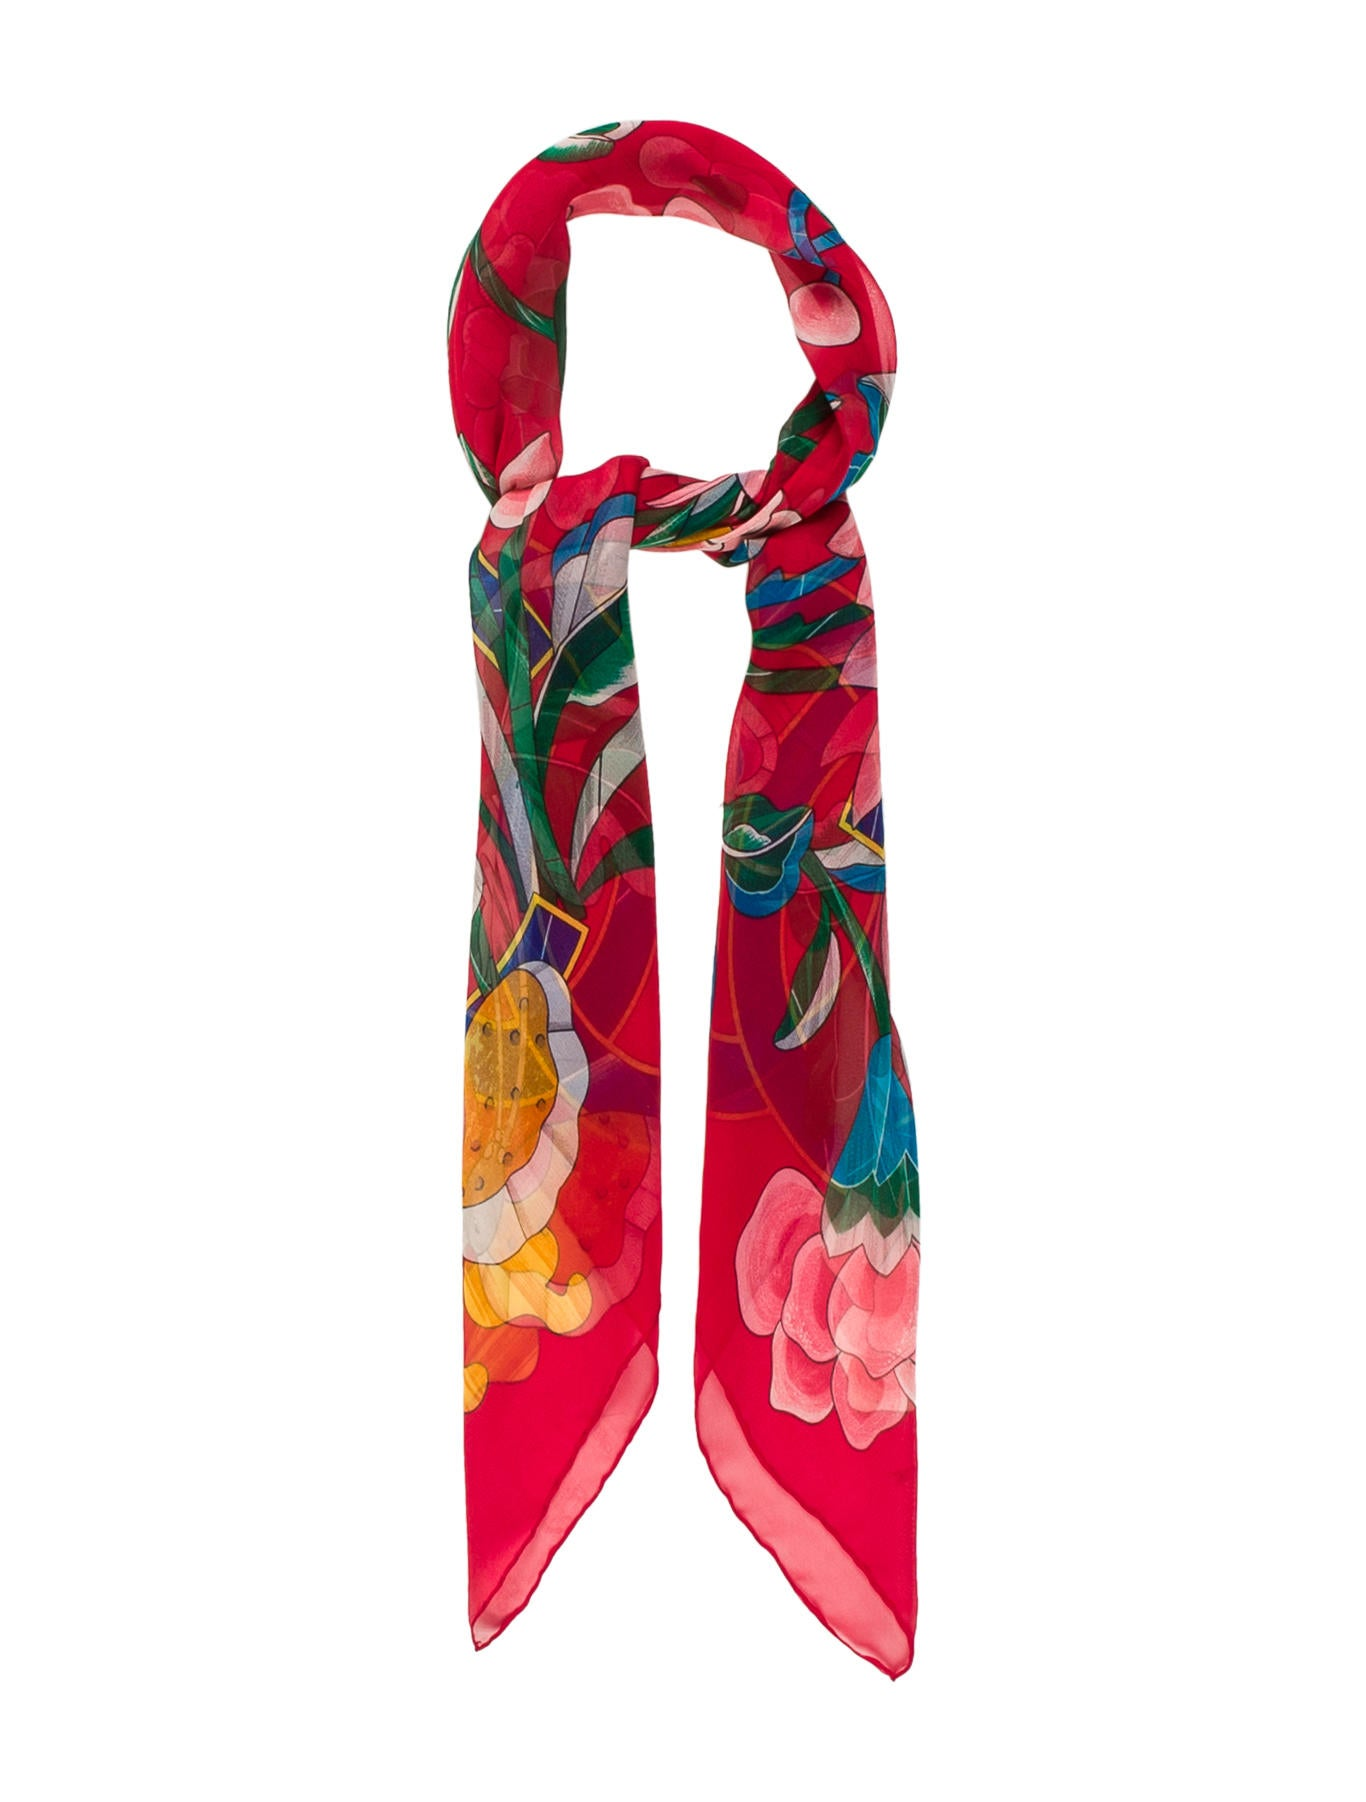 Chanel Camellia Silk Scarf - Accessories - CHA191397 | The ...